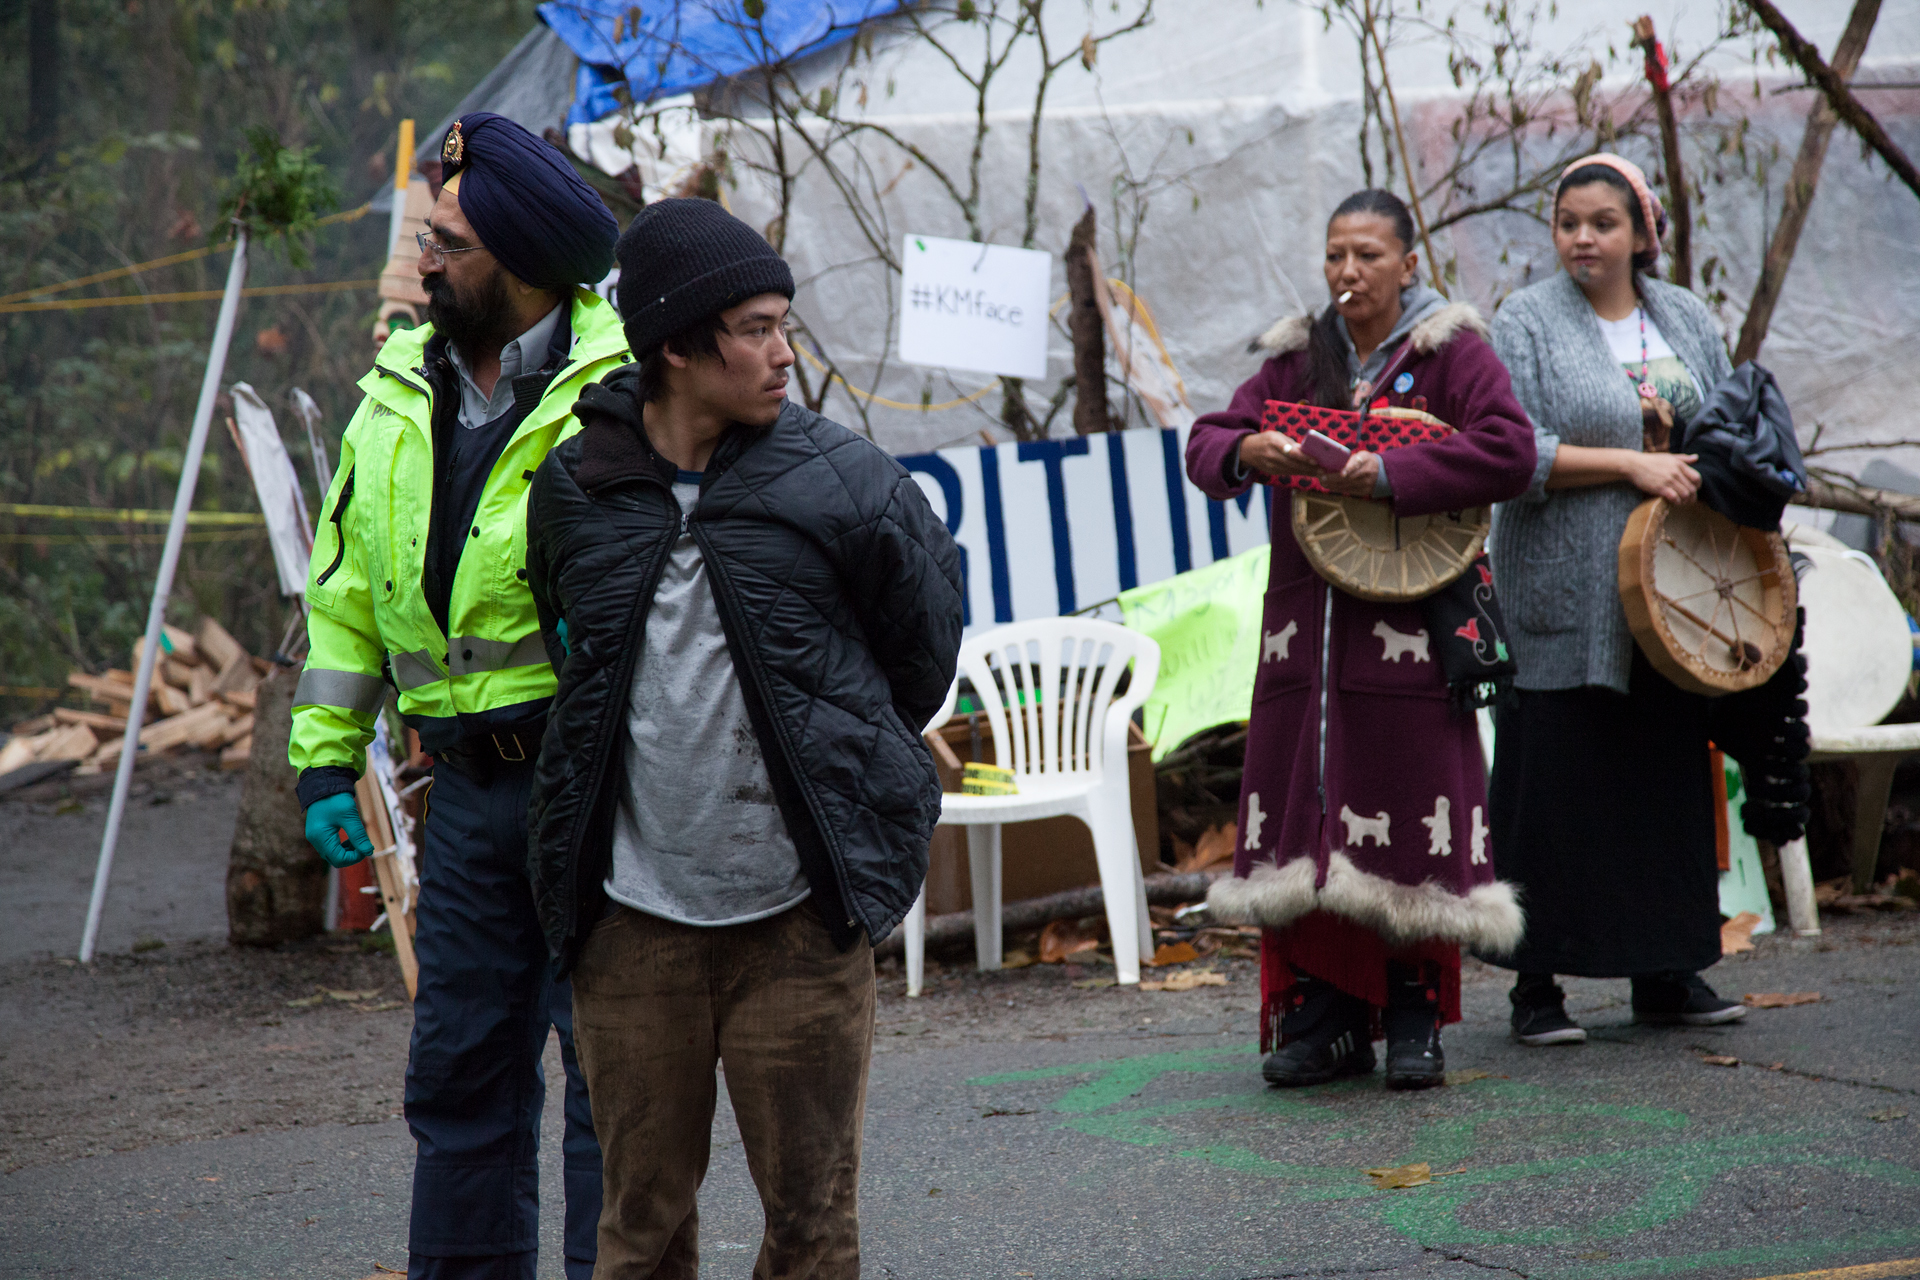 Tamo Campos, an environmental activist and grandson of David Suzuki, was pulled across the injunction line by police and arrested.